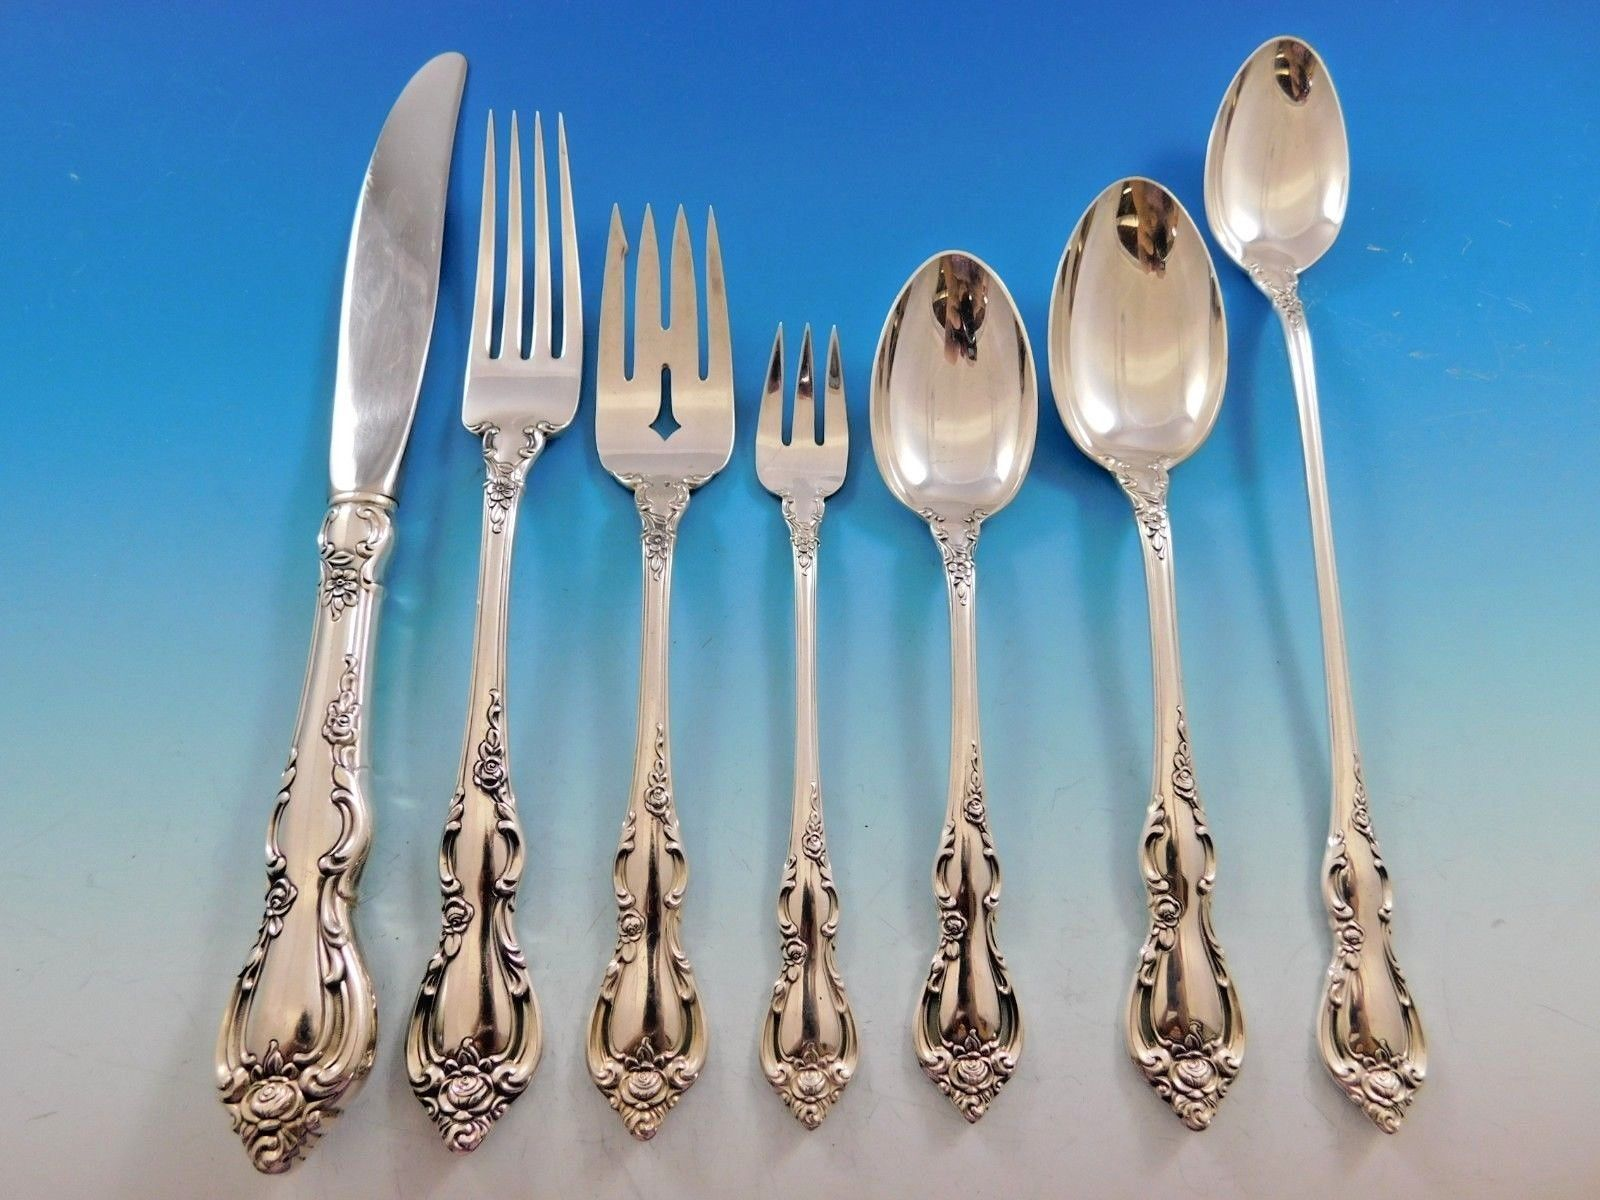 Spanish Provincial by Towle Sterling Silver Flatware Set 12 Service 89 Pieces